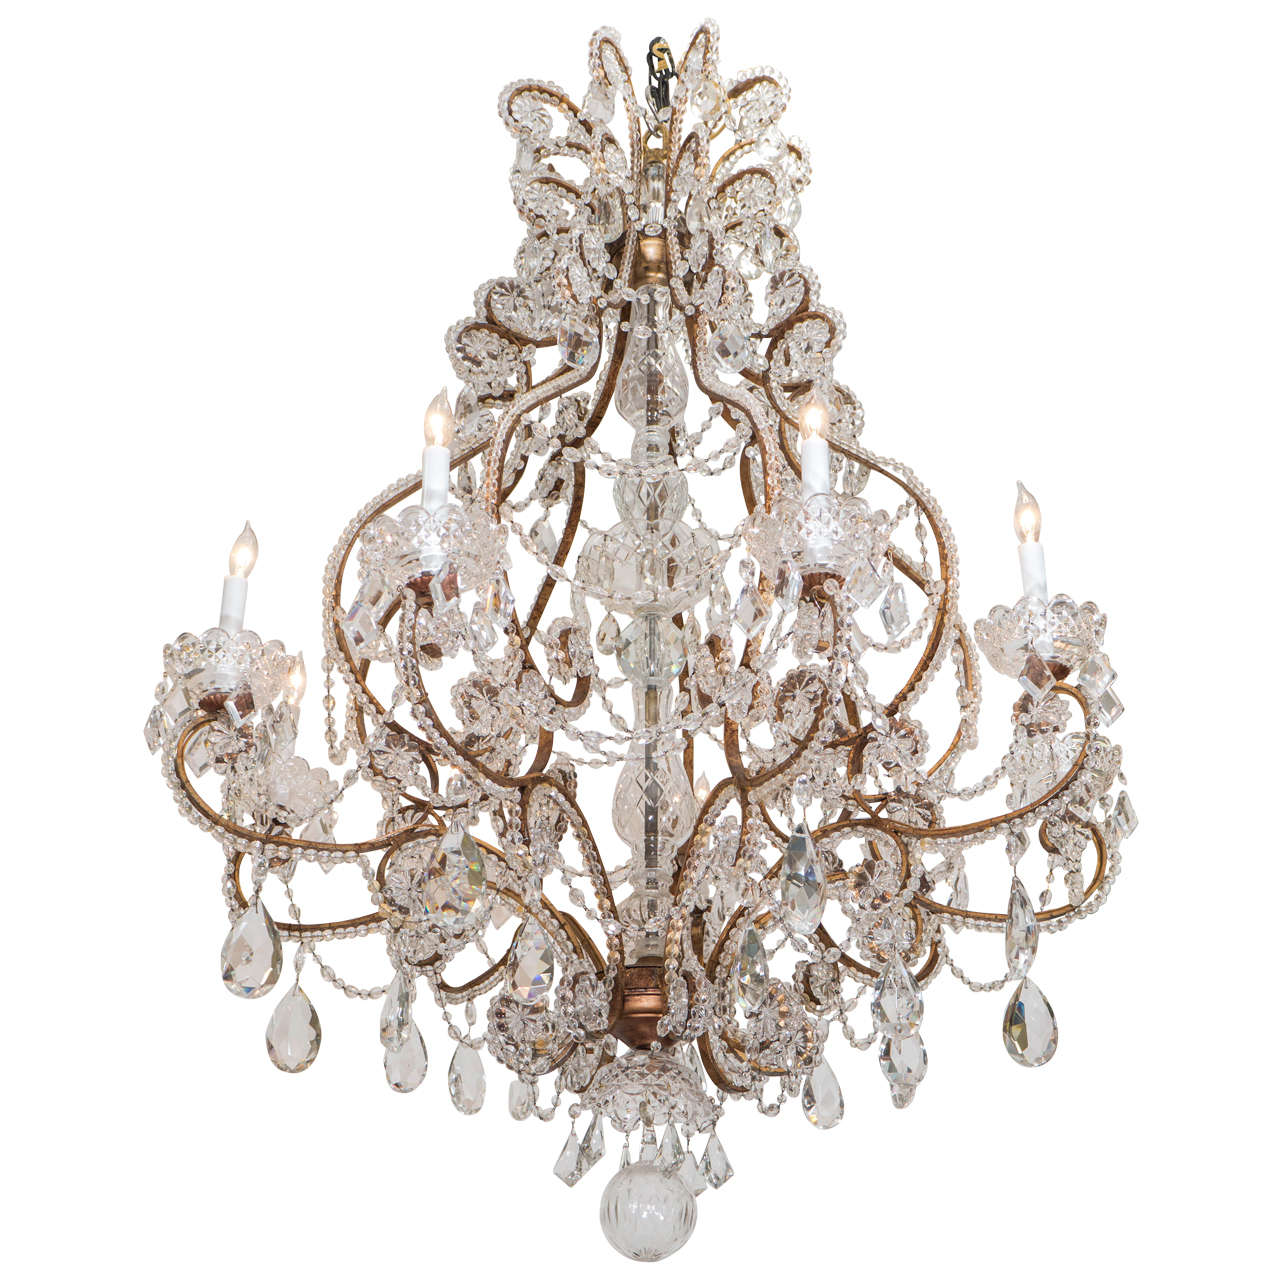 Midcentury Italian Nine-Light Brass and Crystal Chandelier